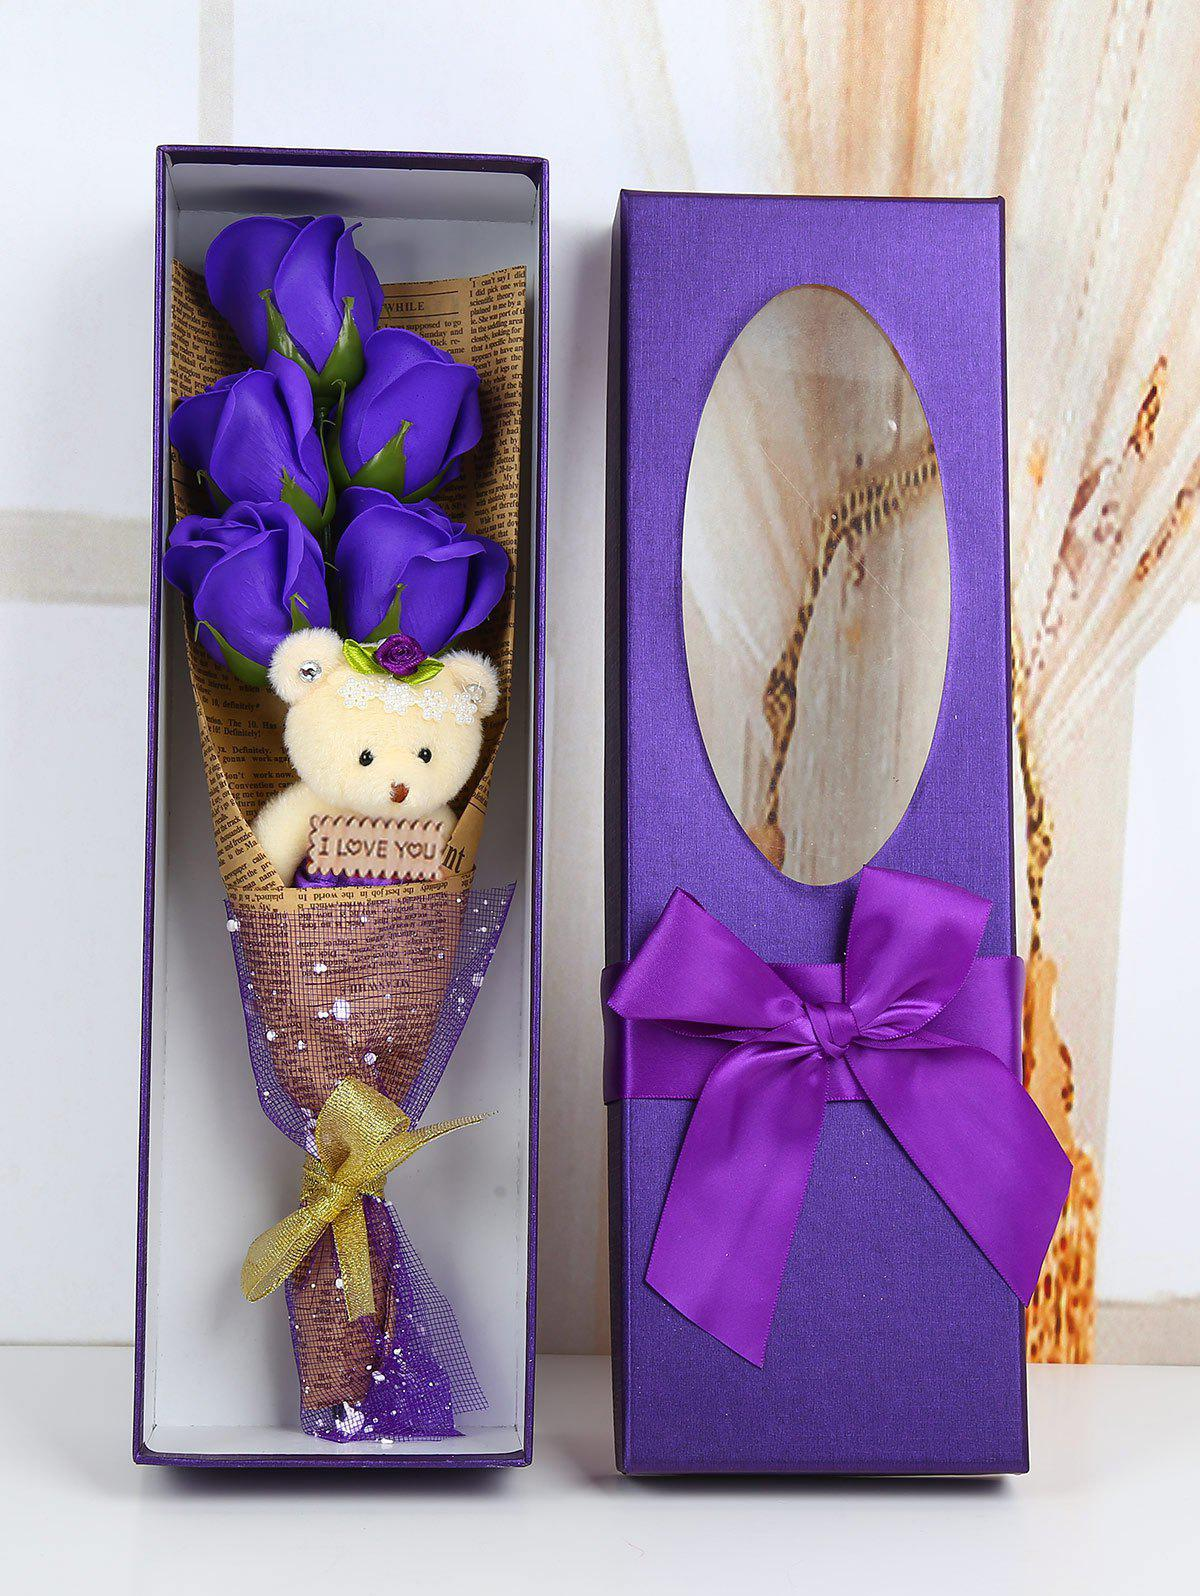 5 Pcs Handmade Soap Rose Artificial Flowers and Bear - PURPLE